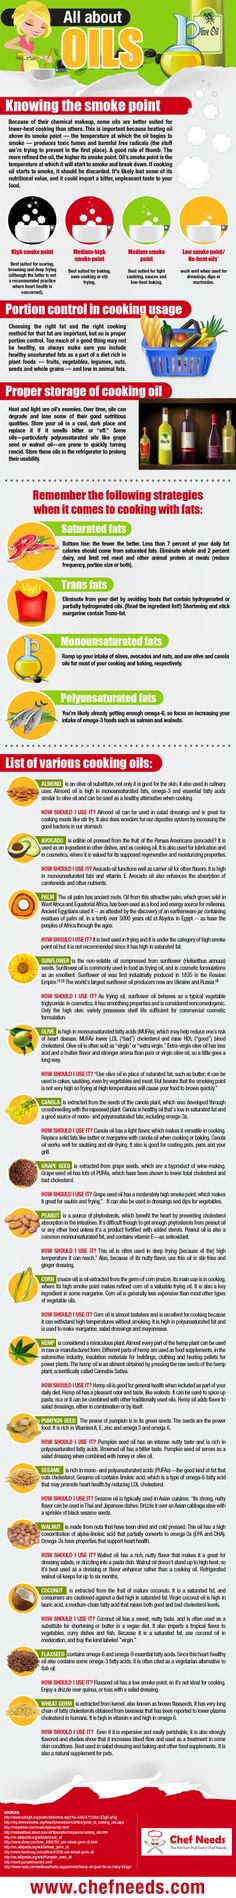 All About Oils [INFOGRAPHIC]#oils